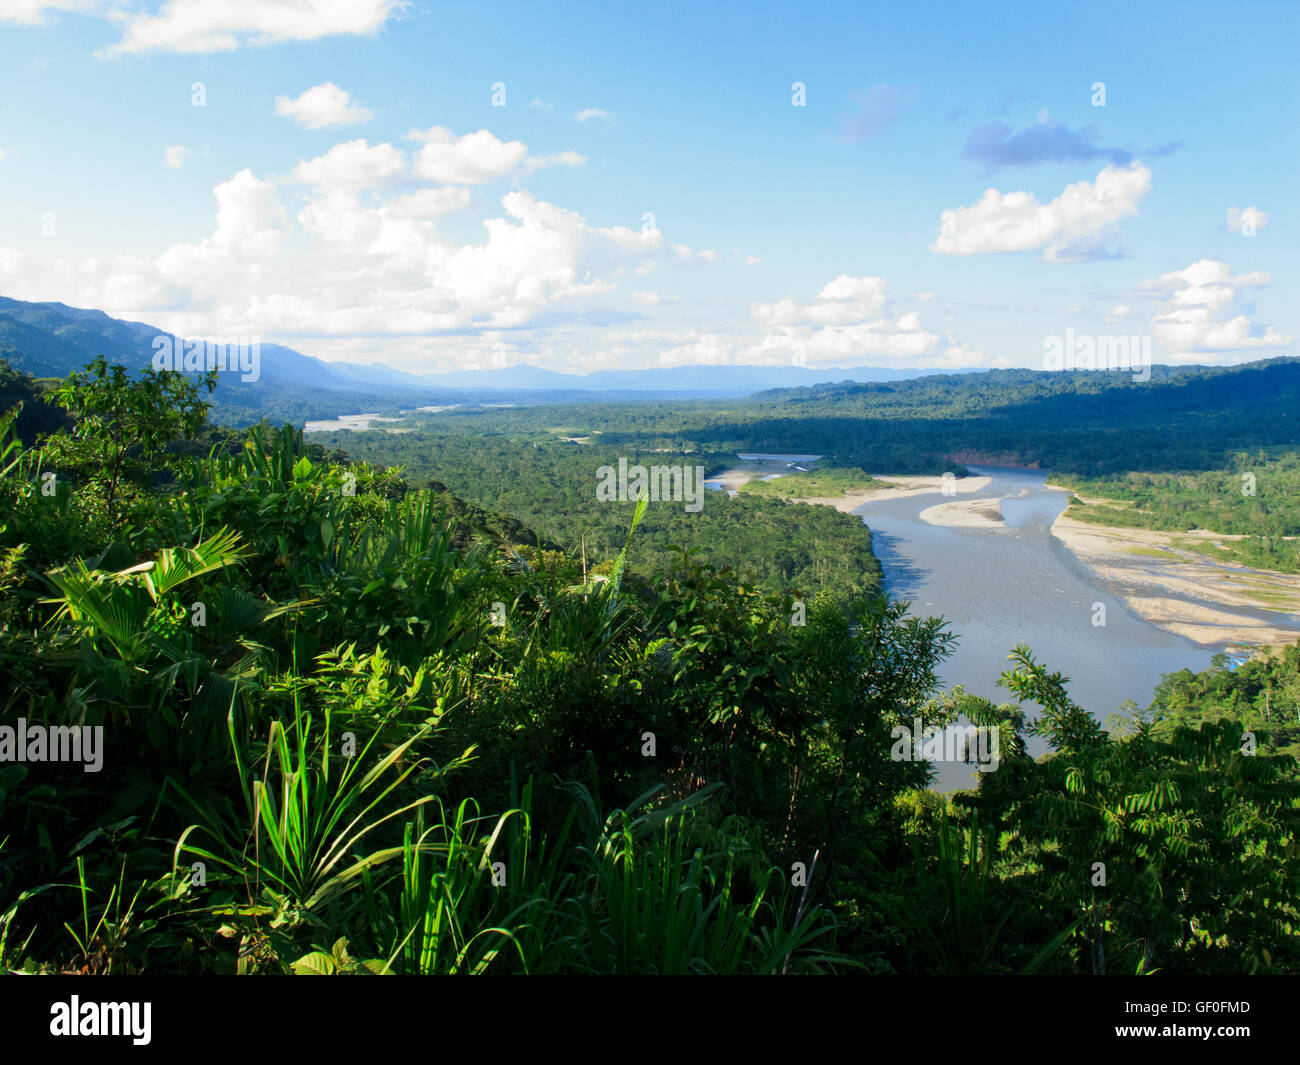 The view of Manu National Park from the mountains. - Stock Image